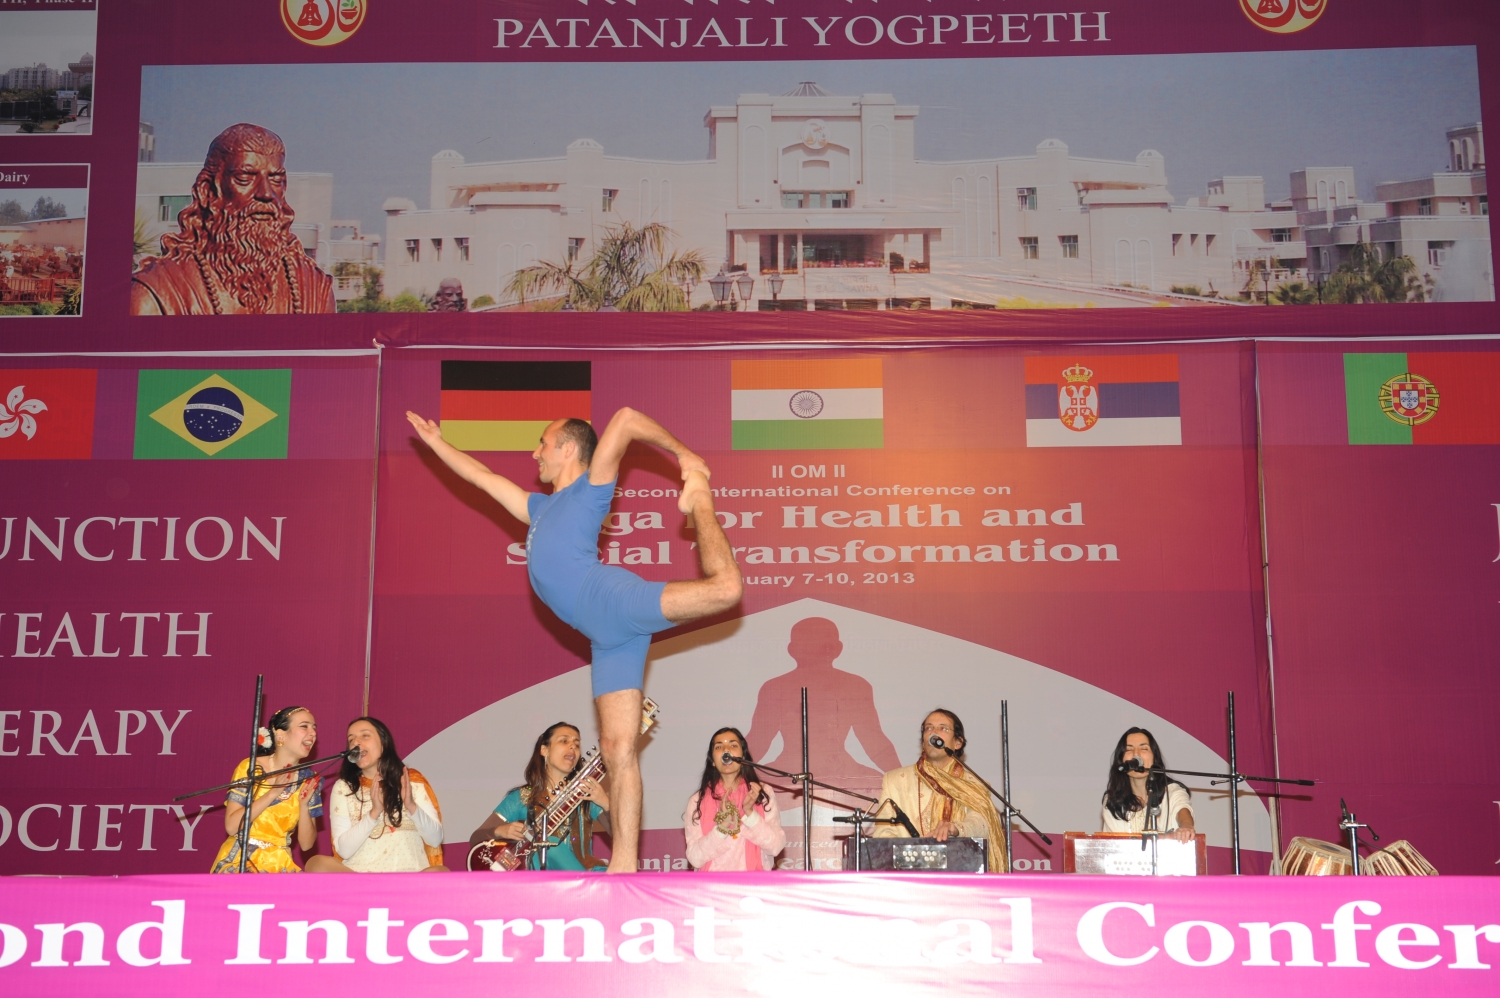 Patañjali Yogapeeth - Yoga for Health and Social Transformation - Índia, Haridvar - 2013, Janeiro